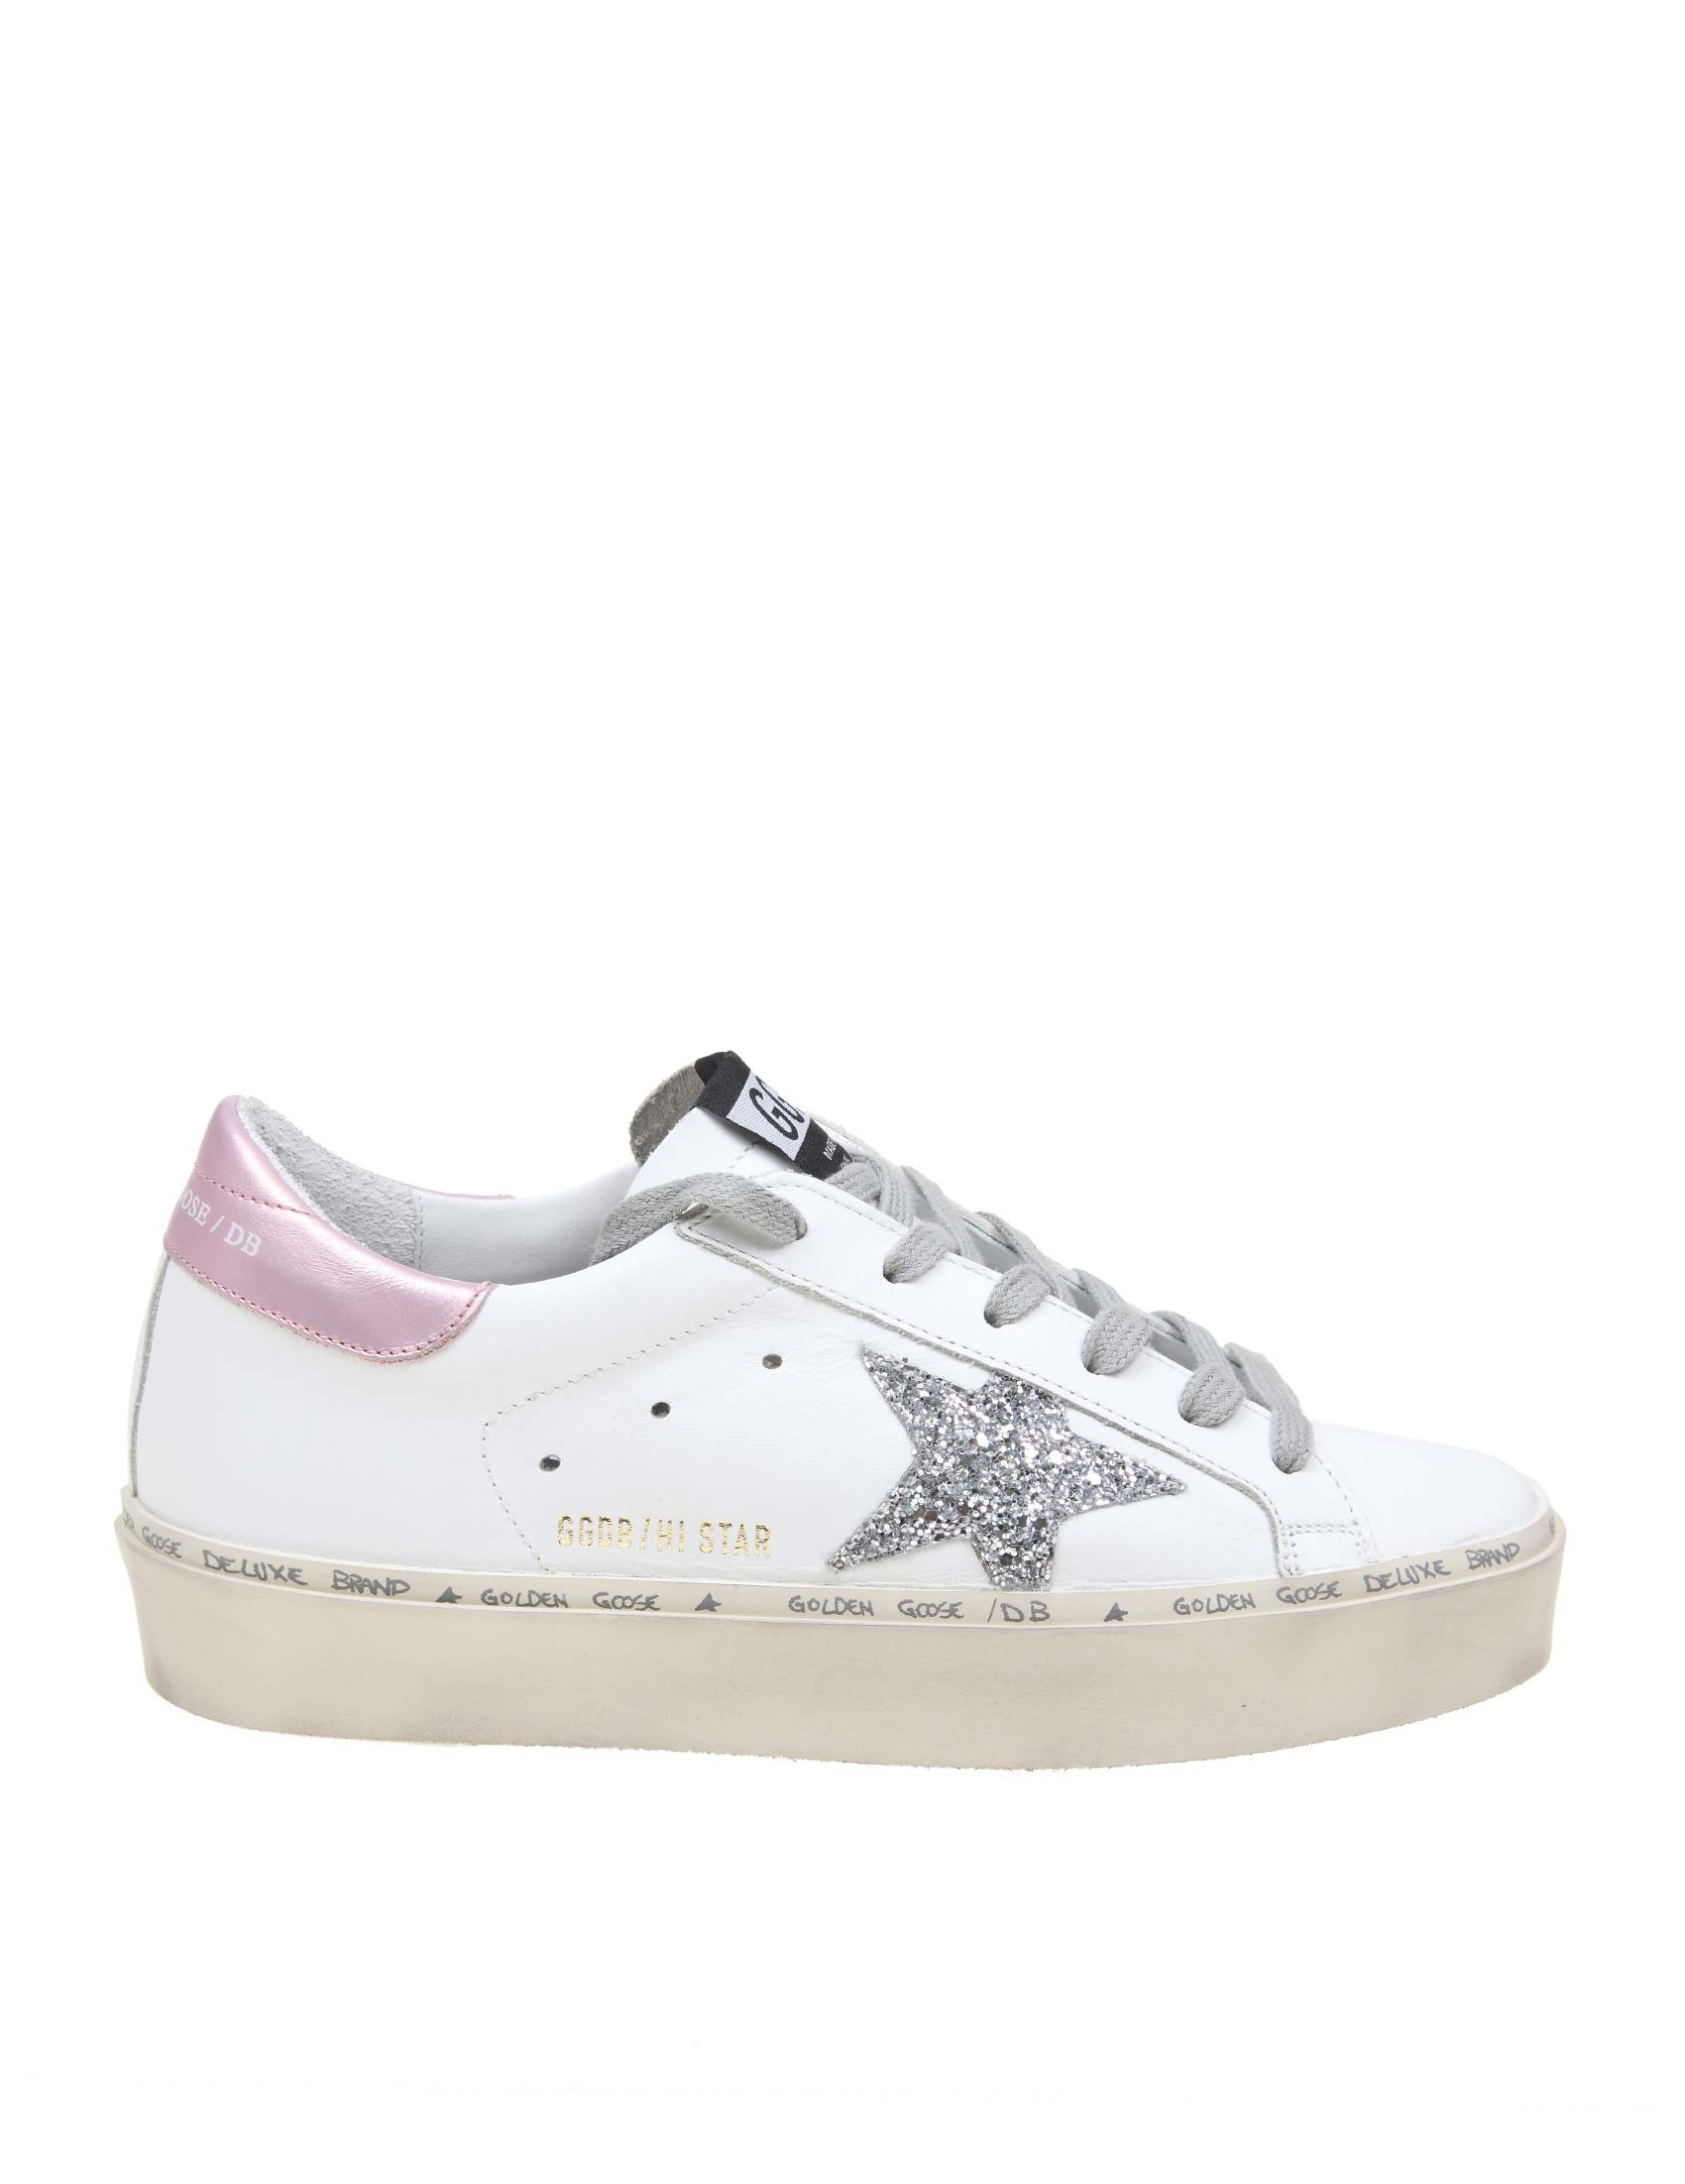 huge discount 906f3 3c09e GOLDEN GOOSE HI STAR SNEAKERS IN WHITE COLOR LEATHER